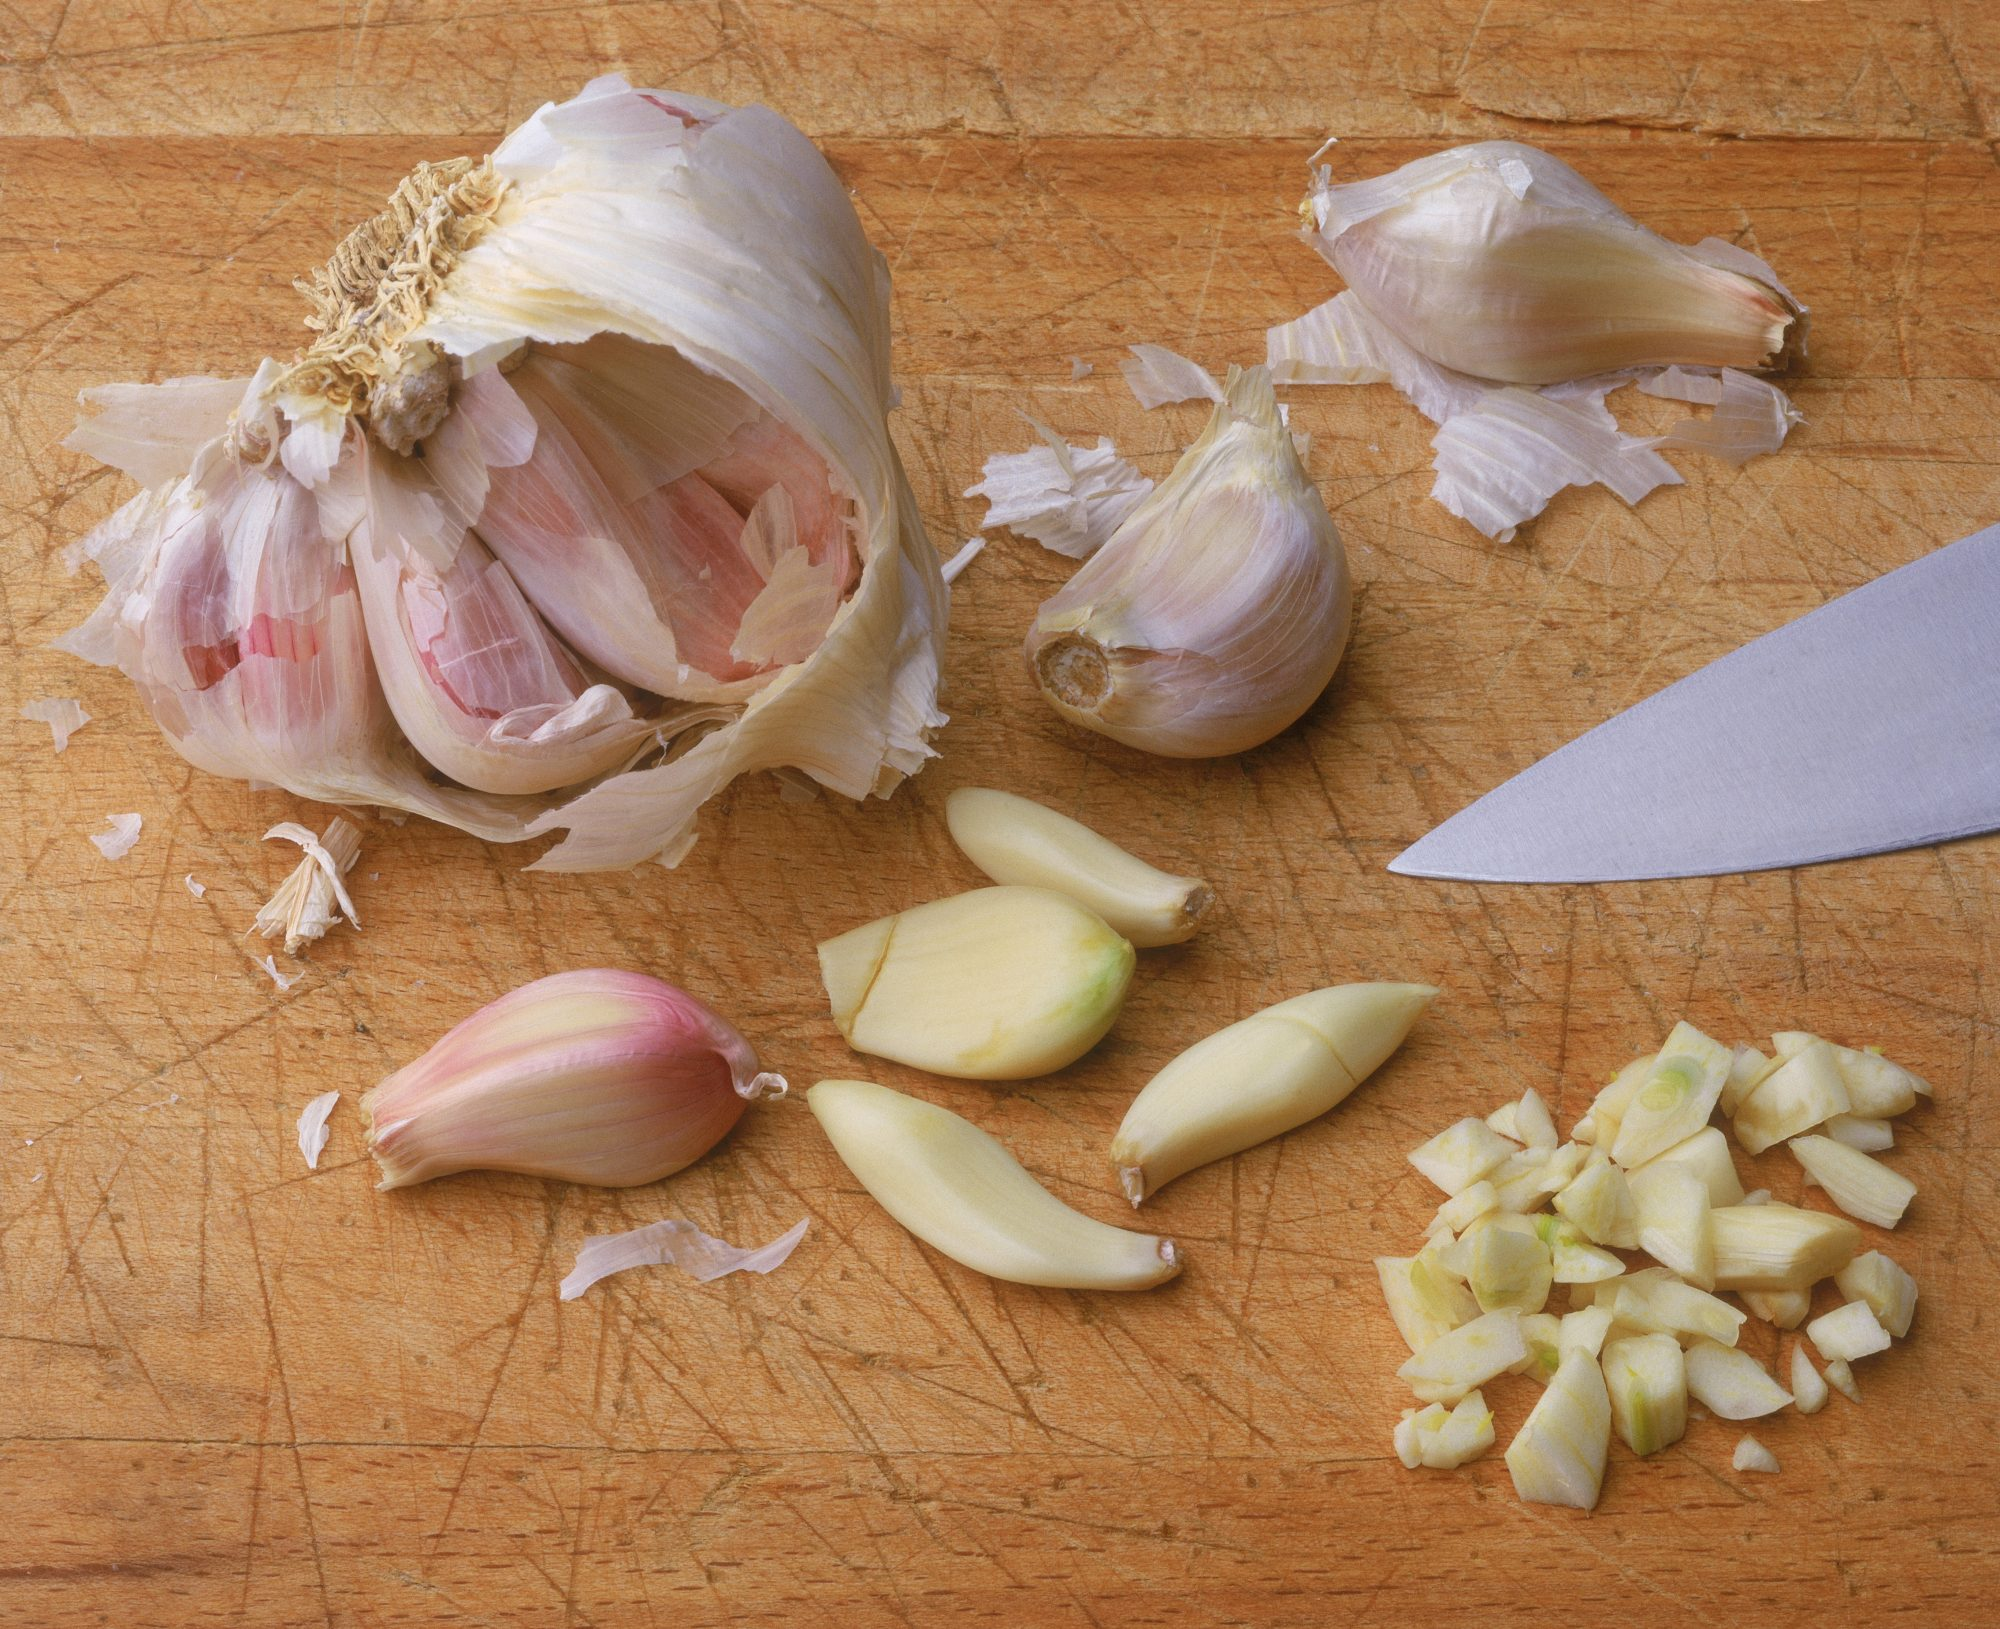 getty-garlic-image